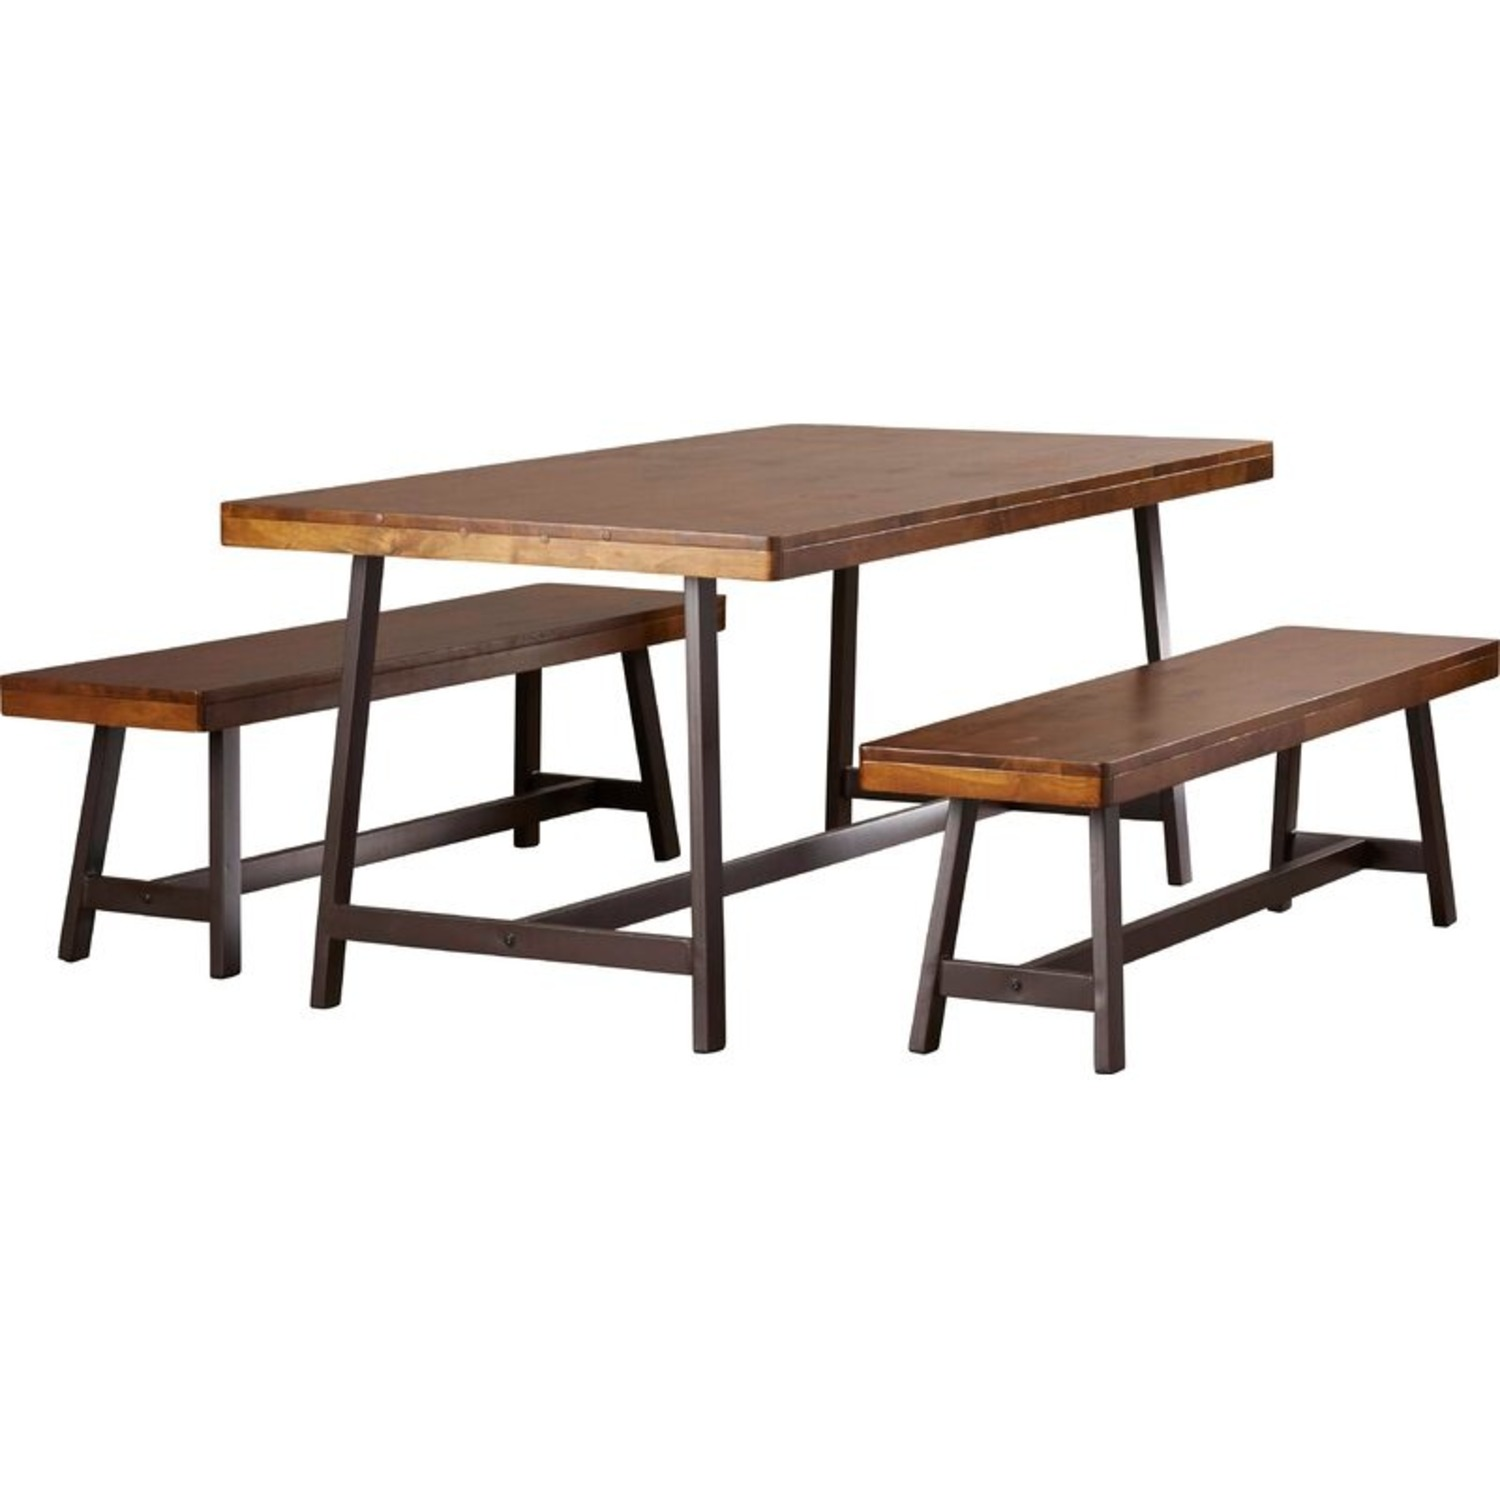 Wood and Steel-framed Table and Benches